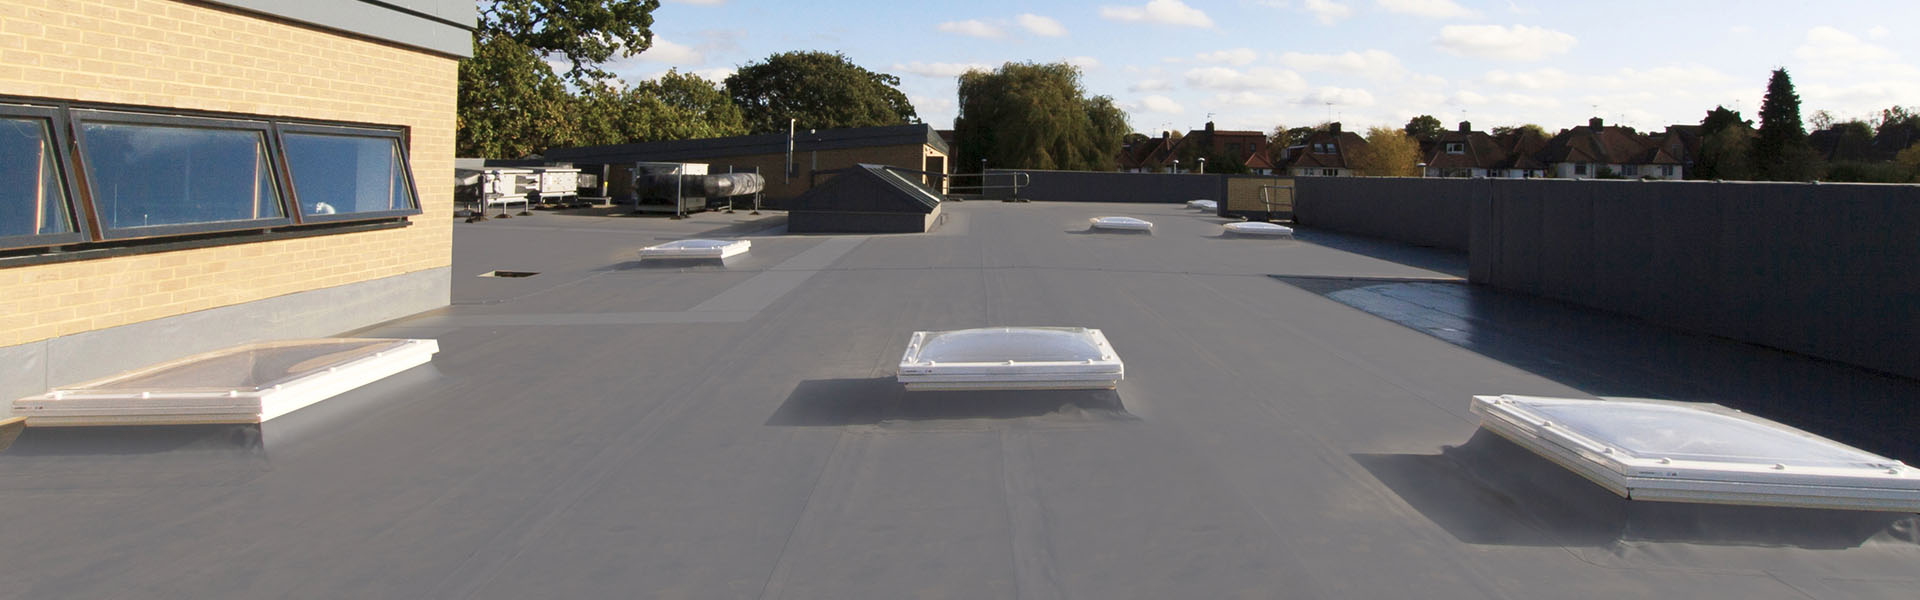 Polycarbonate Roof Domes